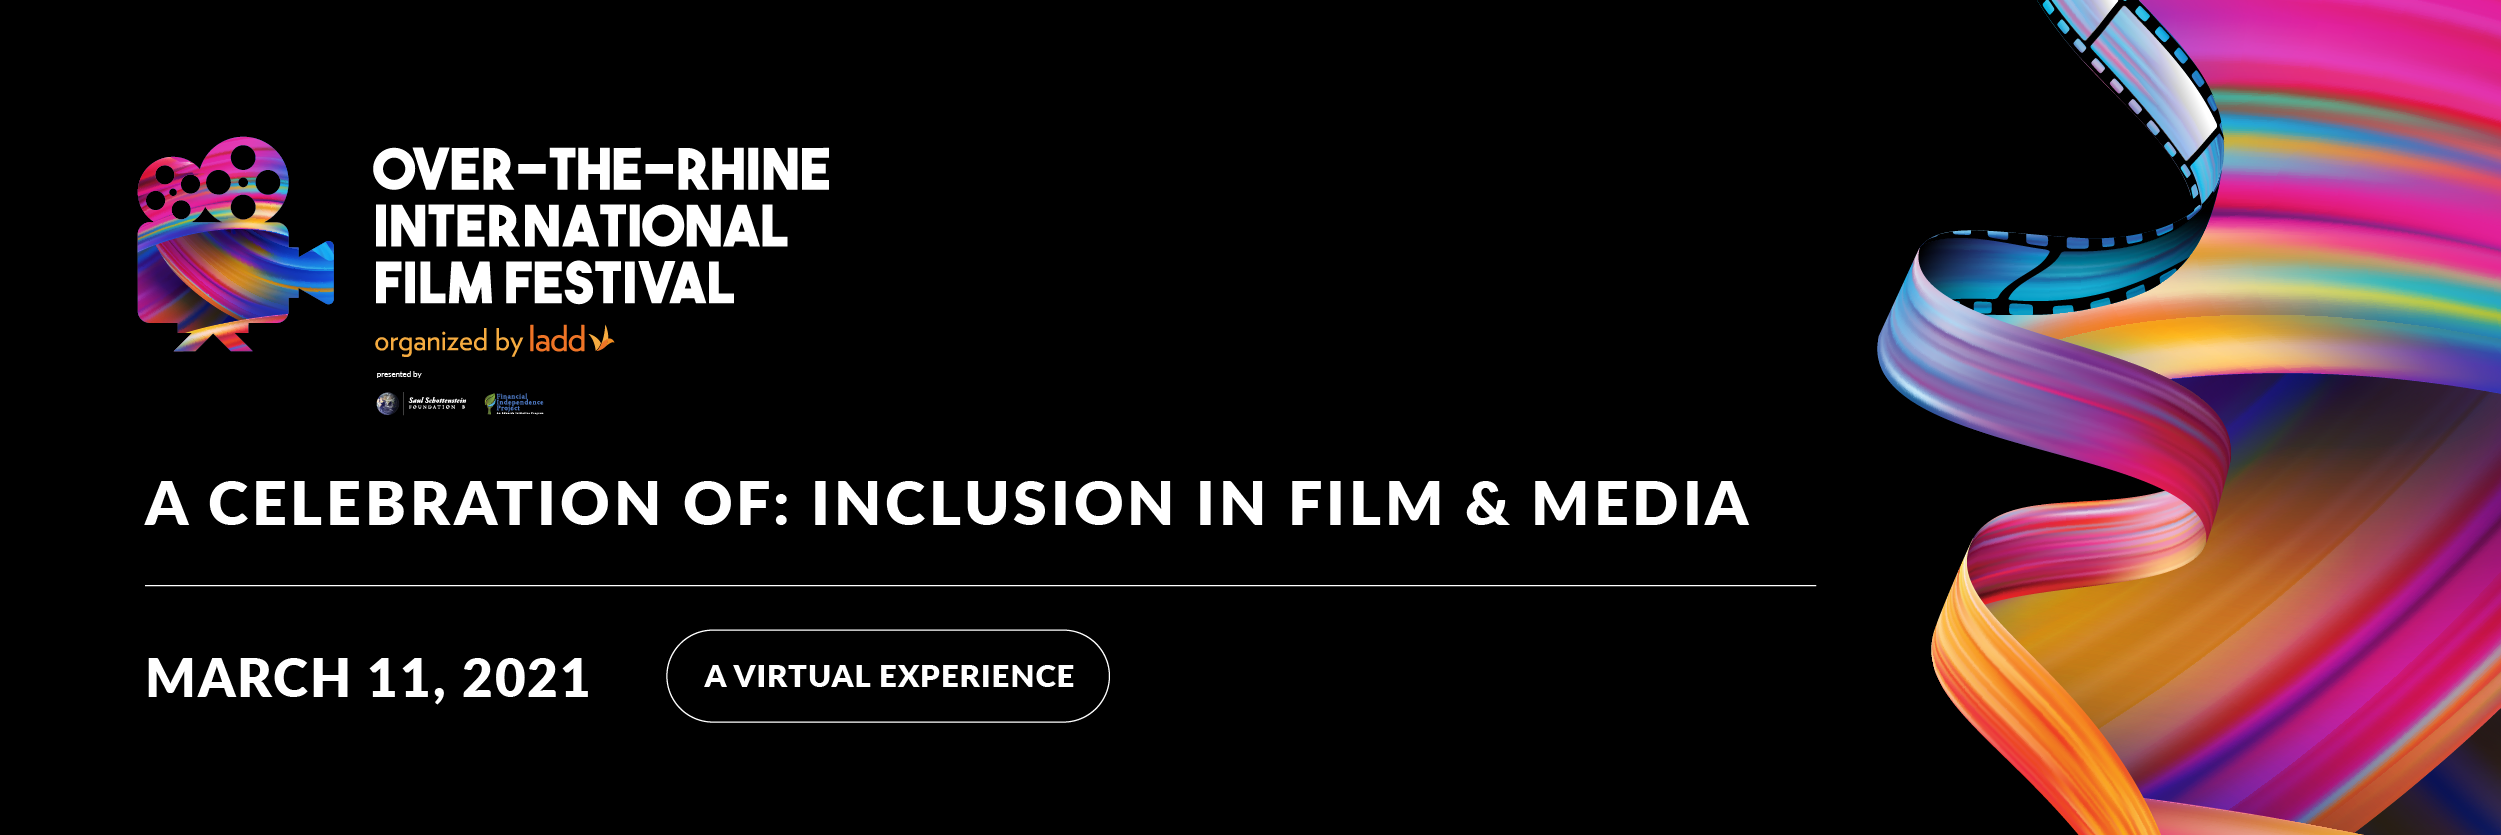 """Black graphic with colorful film reel on right side. Text says """"Over-the-Rhine International Film Festival. A Celebration of Inclusion in Film & Media. March 11, 2021. A virtual experience."""